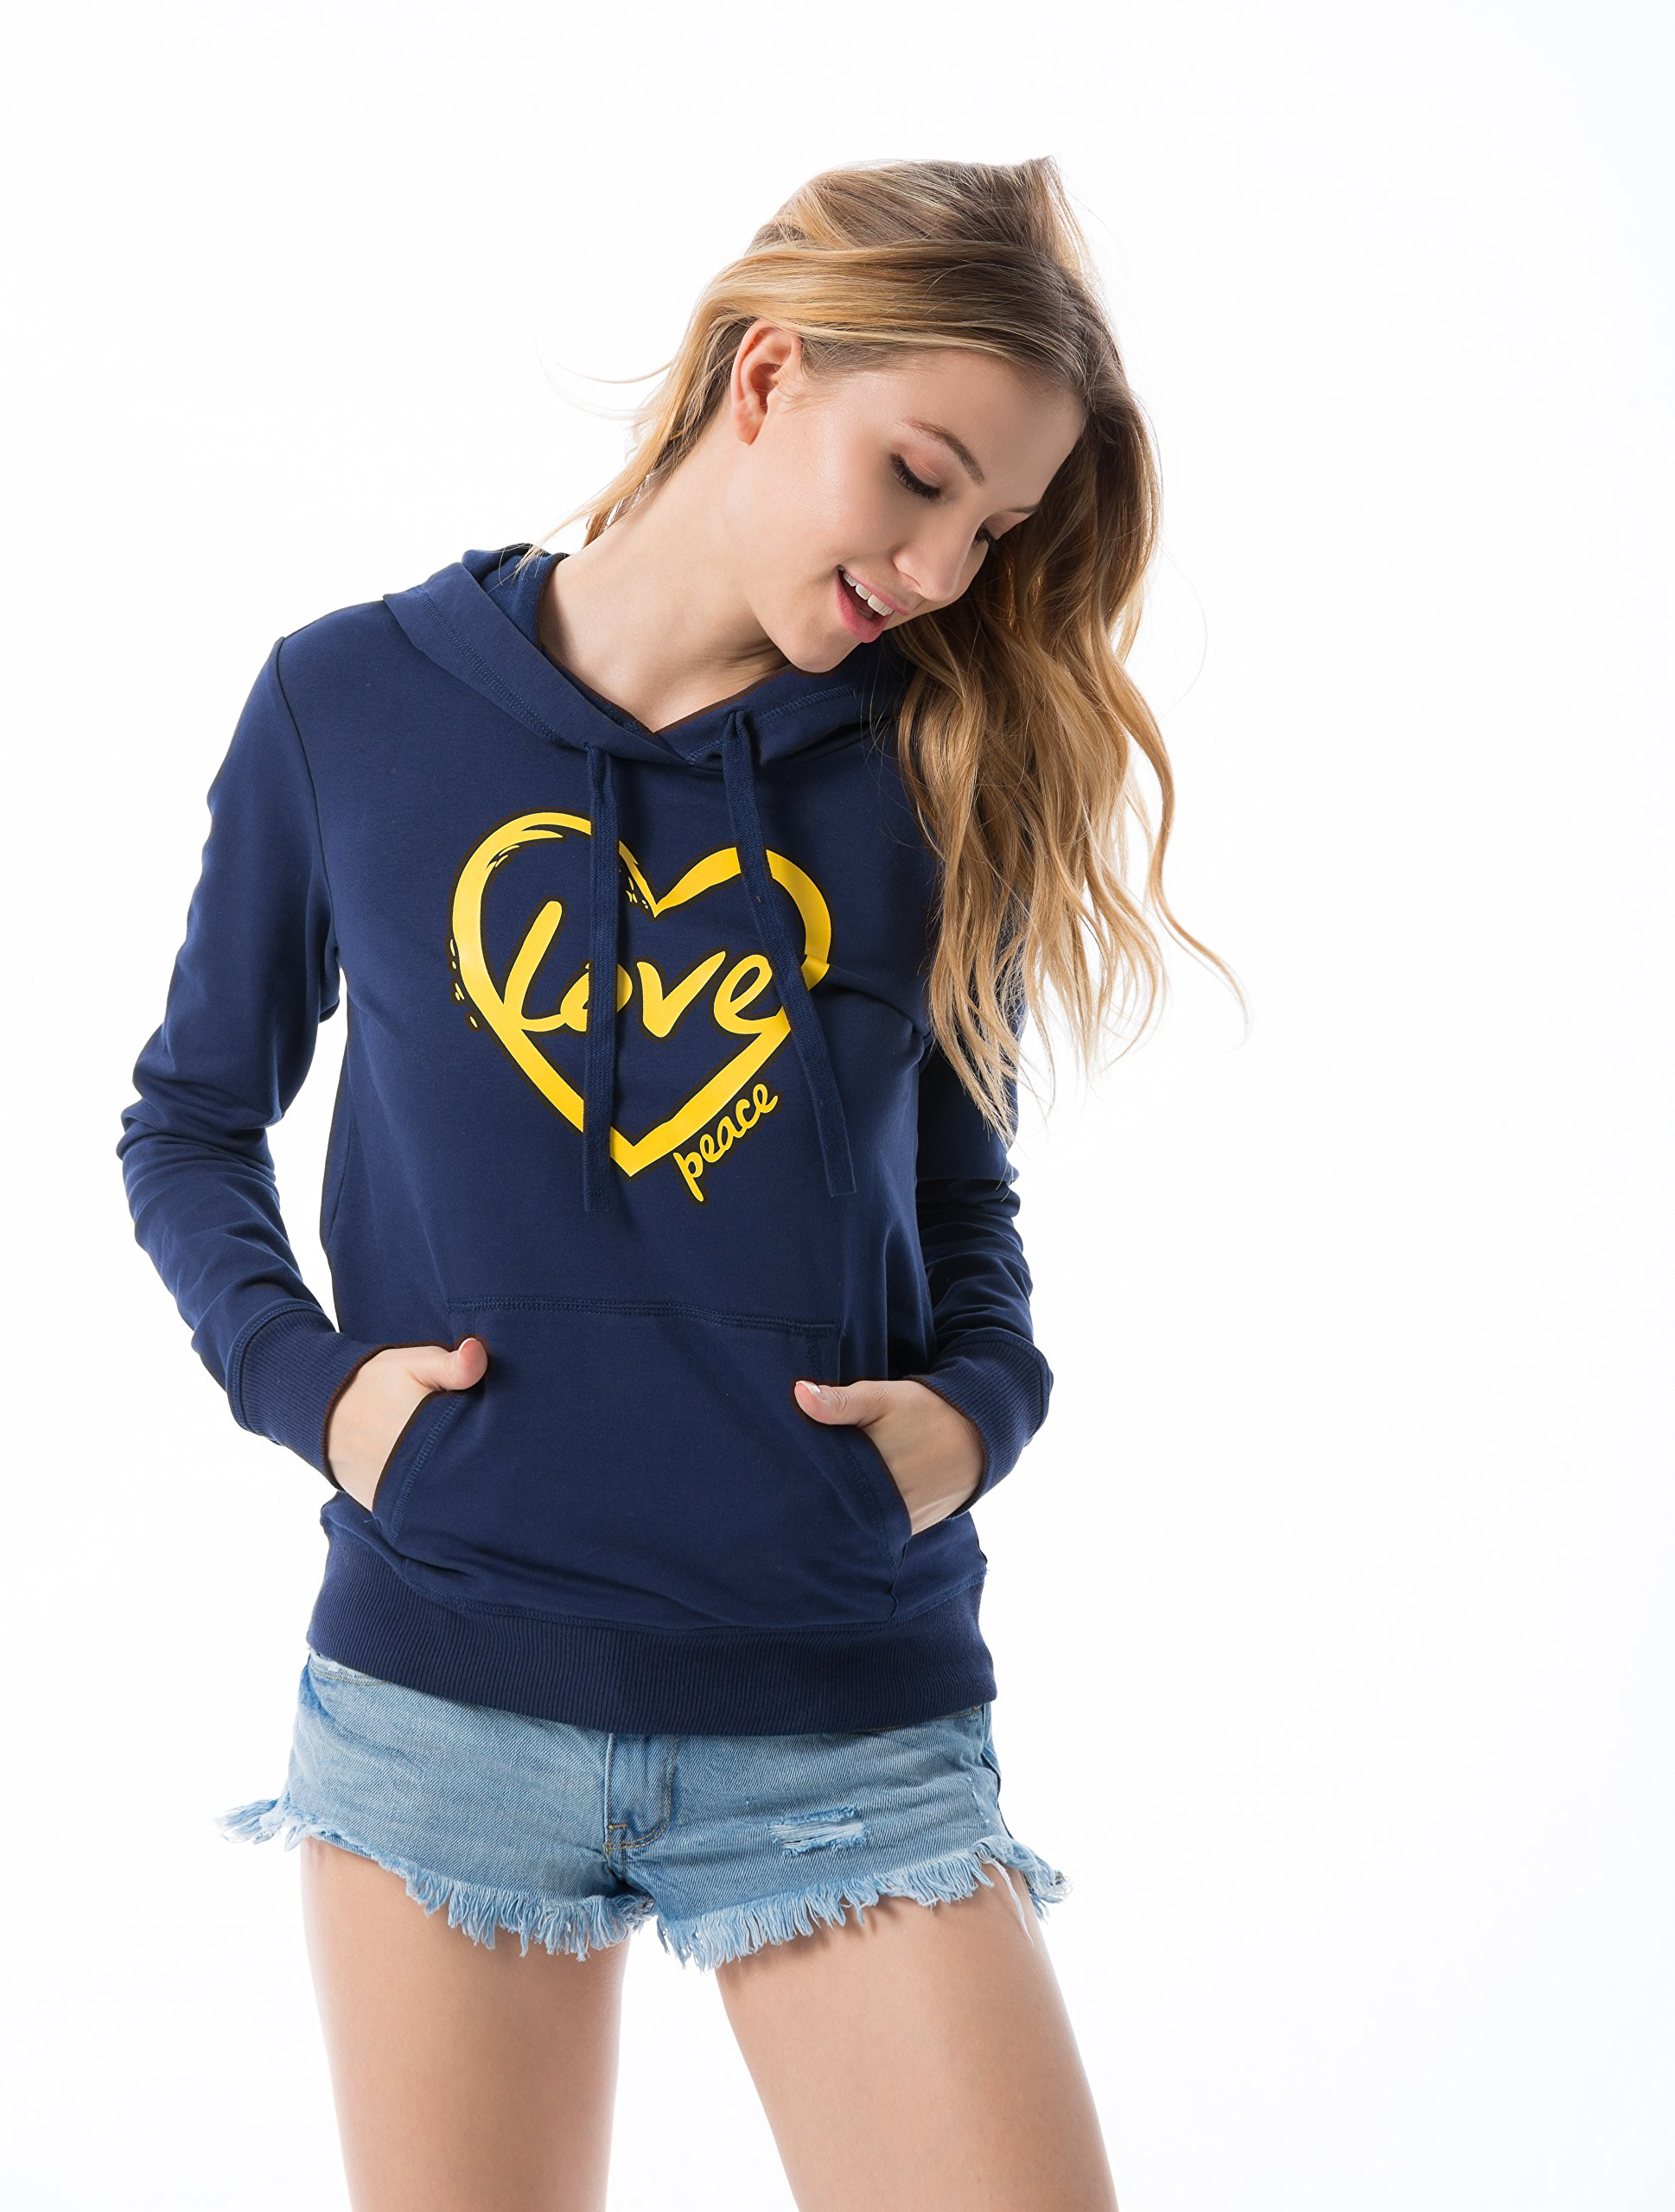 VIVILISH WOMEN LOVE-HEART-PEACE FAVORITE HOODIE - Designed in Los Angeles,X-Small,Navy